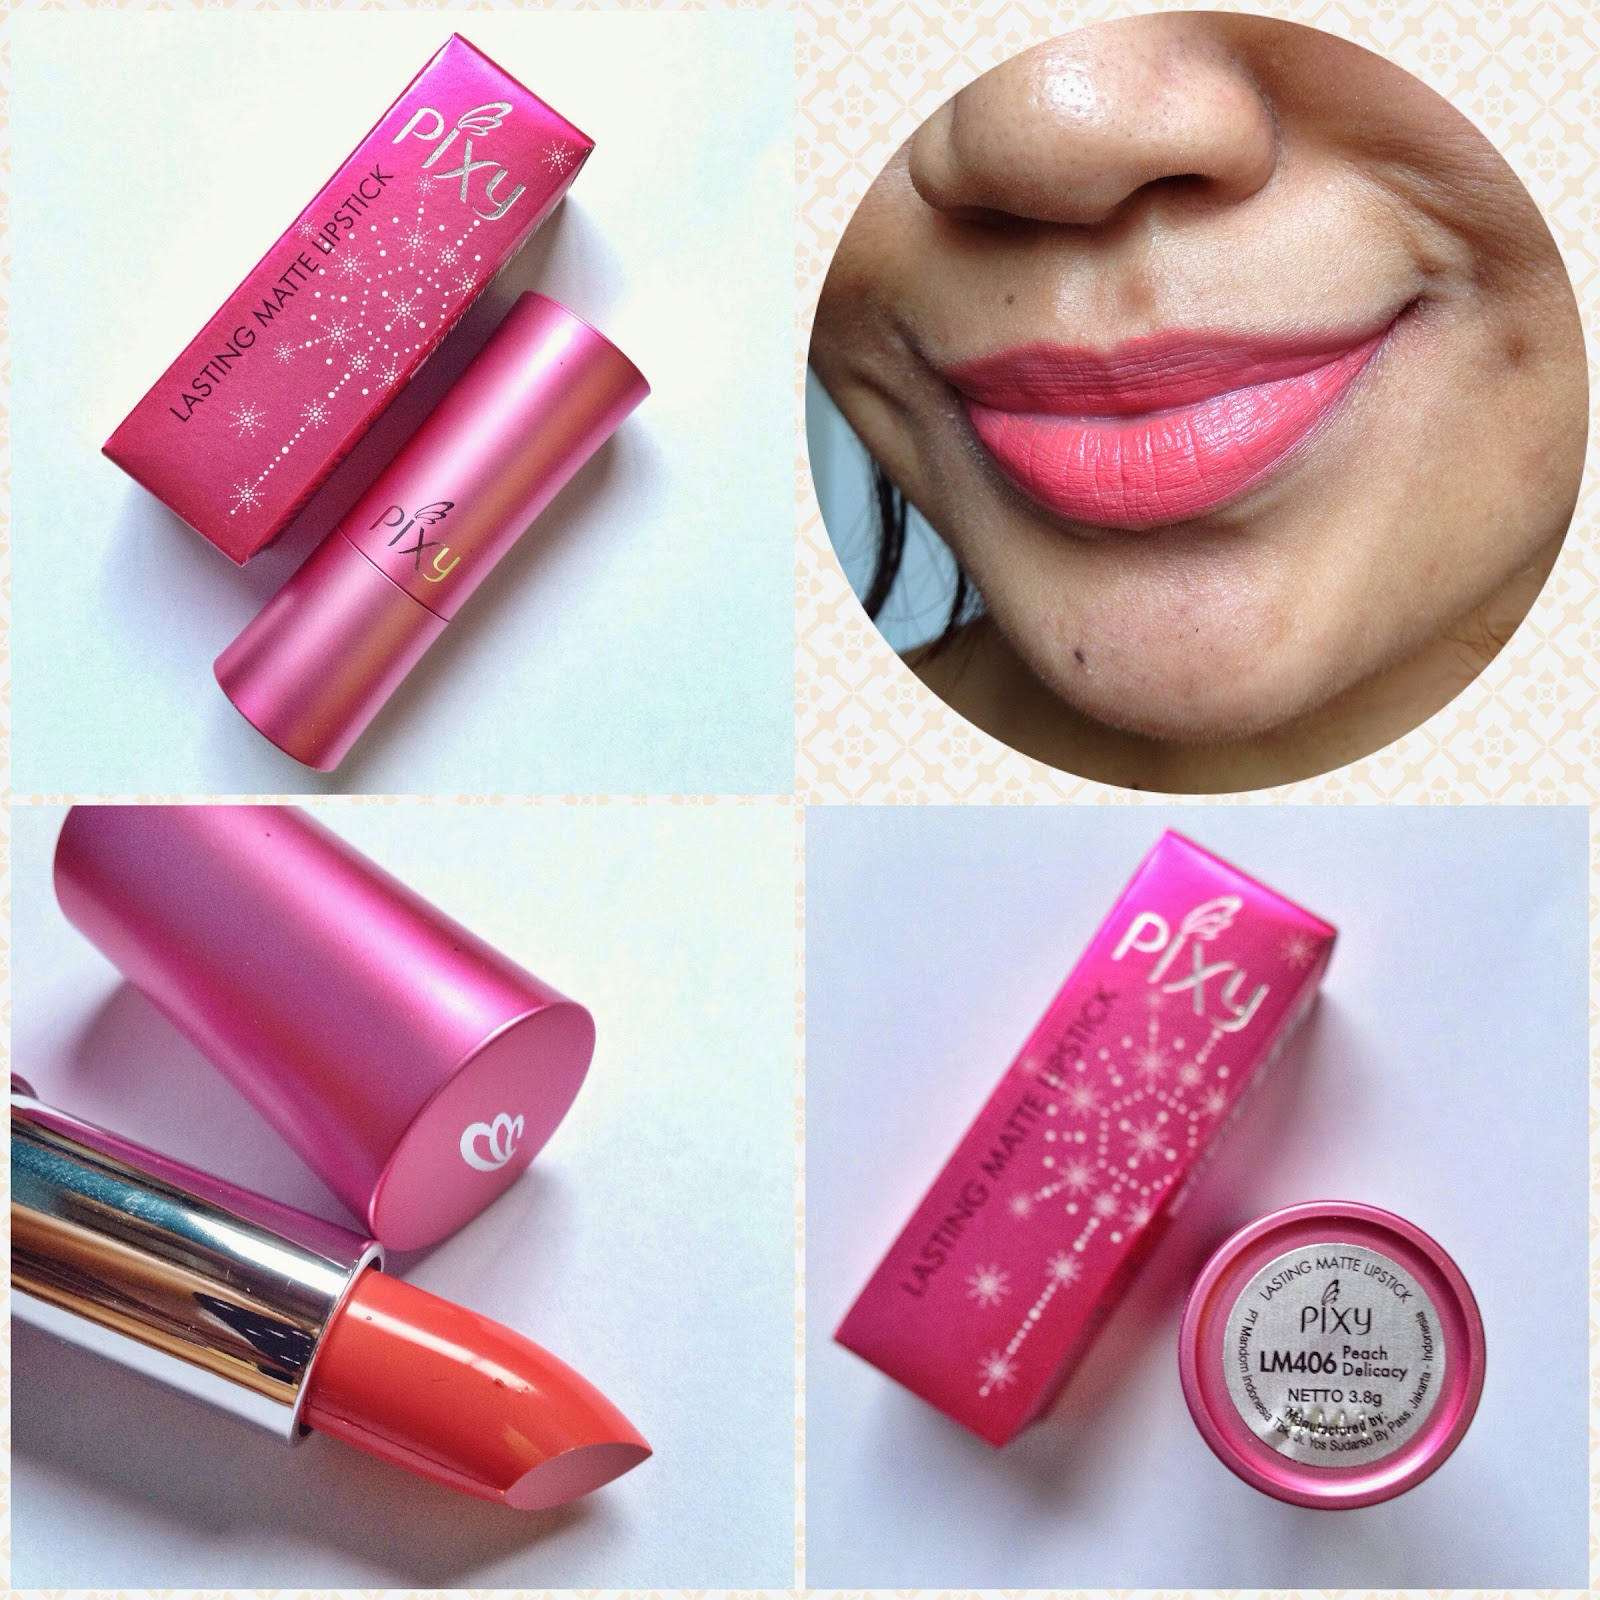 Quick And Easy With Pixy I Am Krissy Matte Lipstik Lasting Lipstick In Peach Delicacy